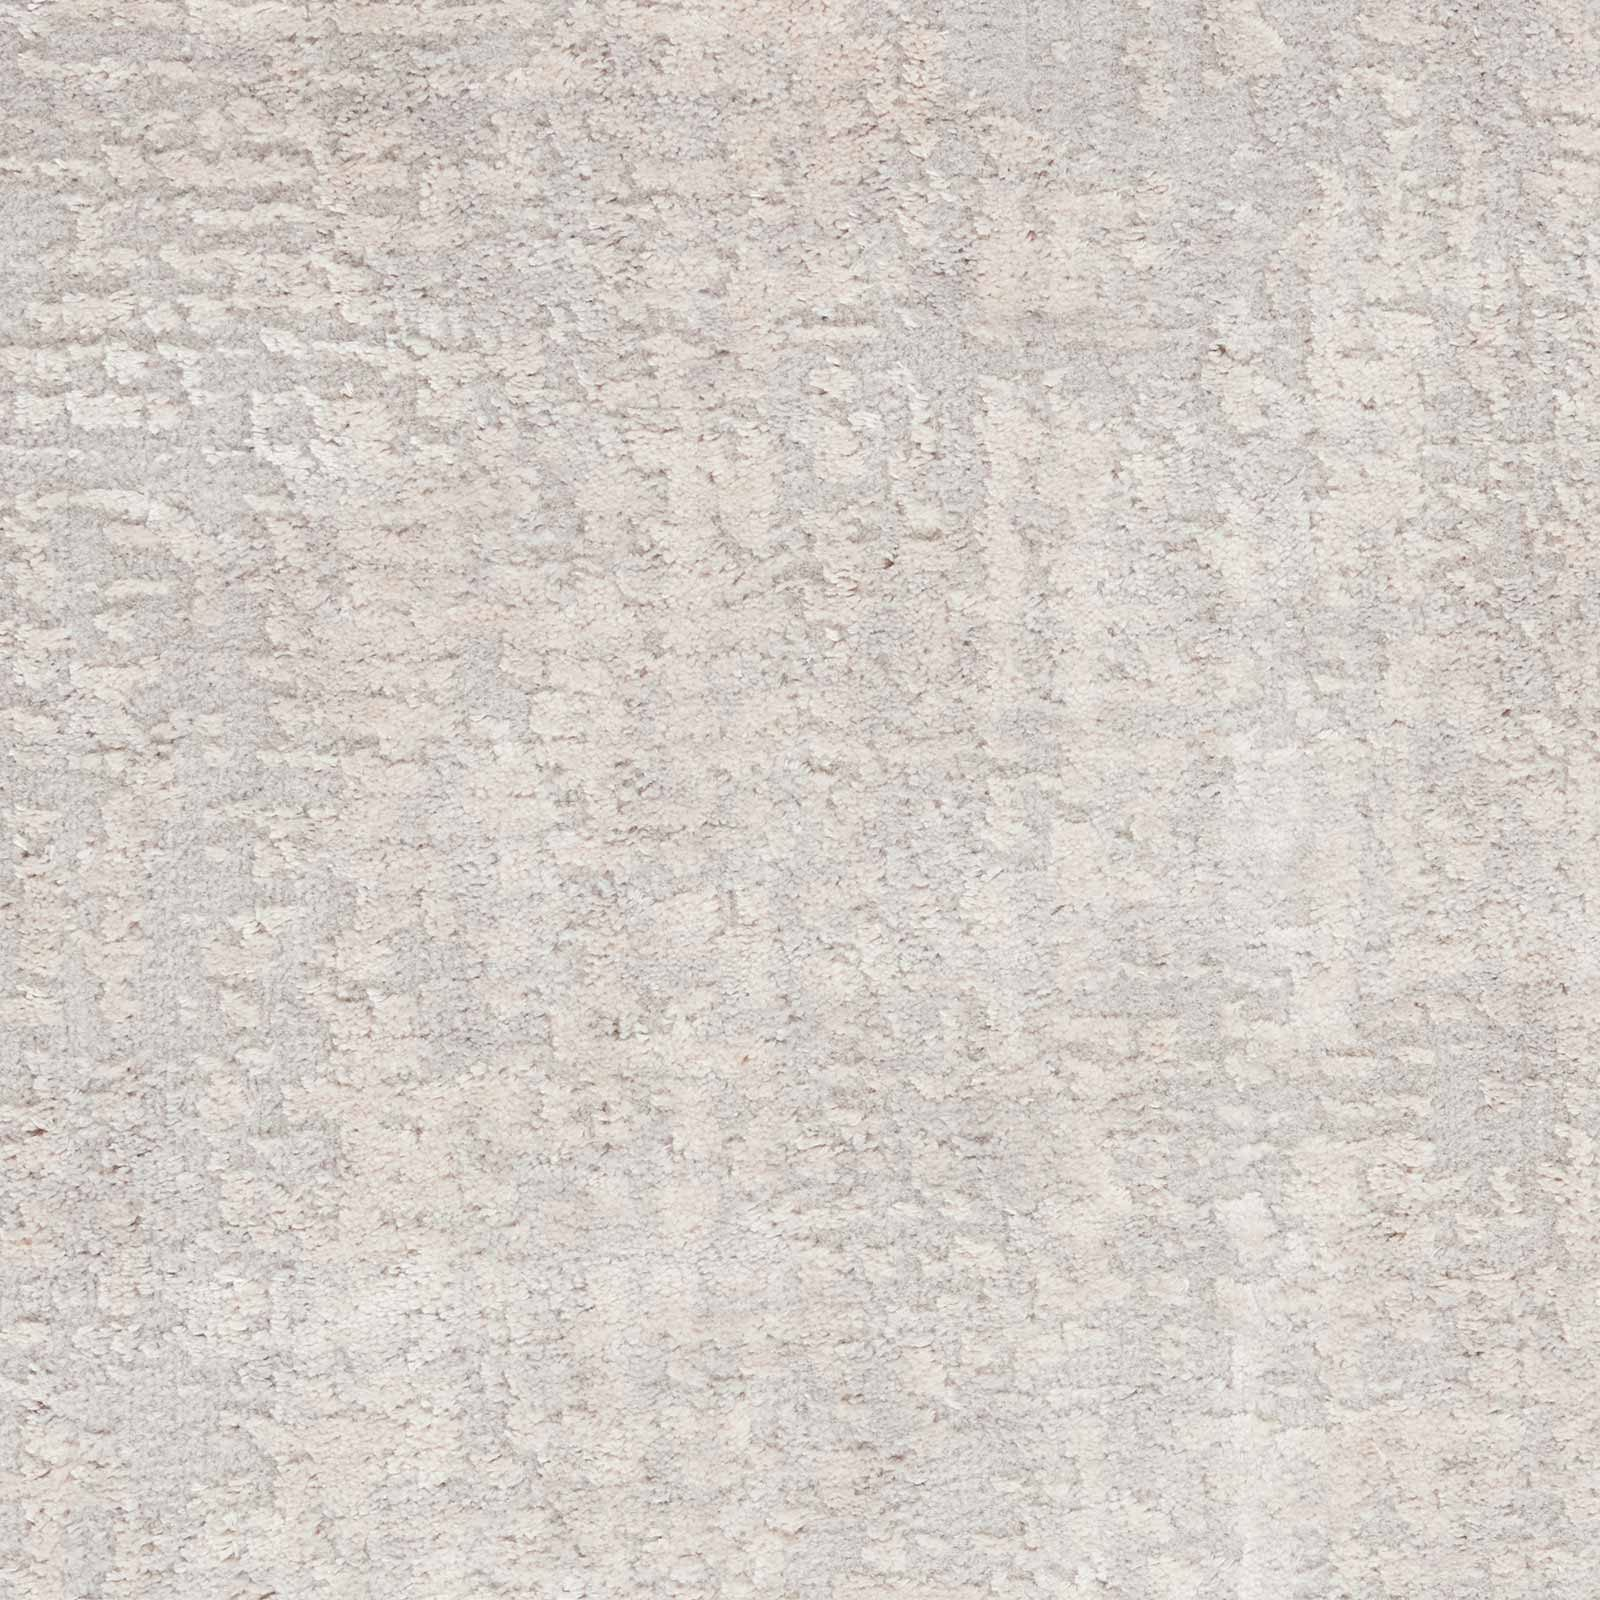 Nourison rug Silky Textures SLY01 IVORY GREY 5x7 099446709837 swatch C